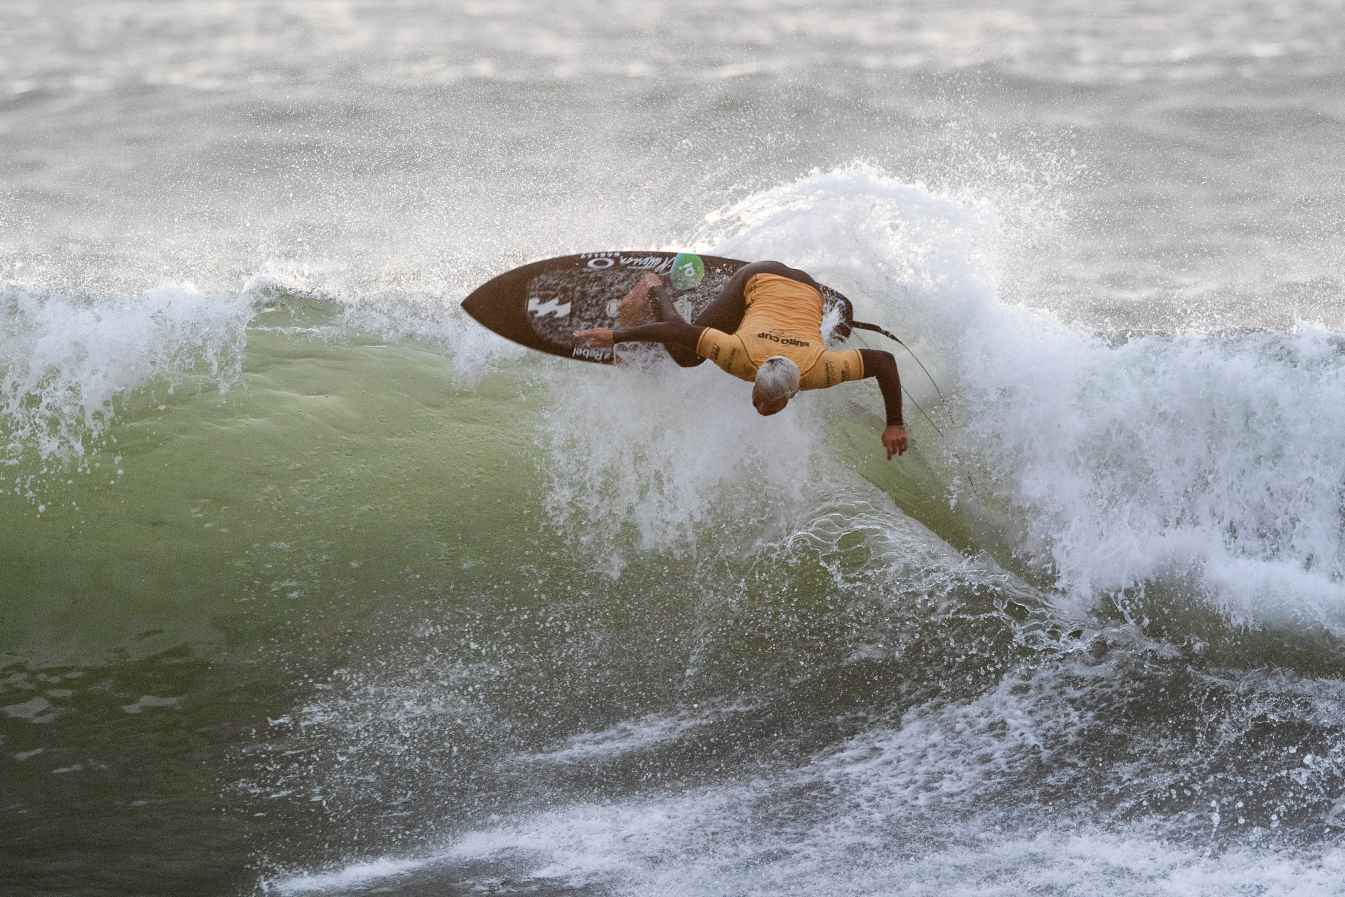 portugal wsl meo surf30 ferreira i7214MeoPortugal20Poullenot